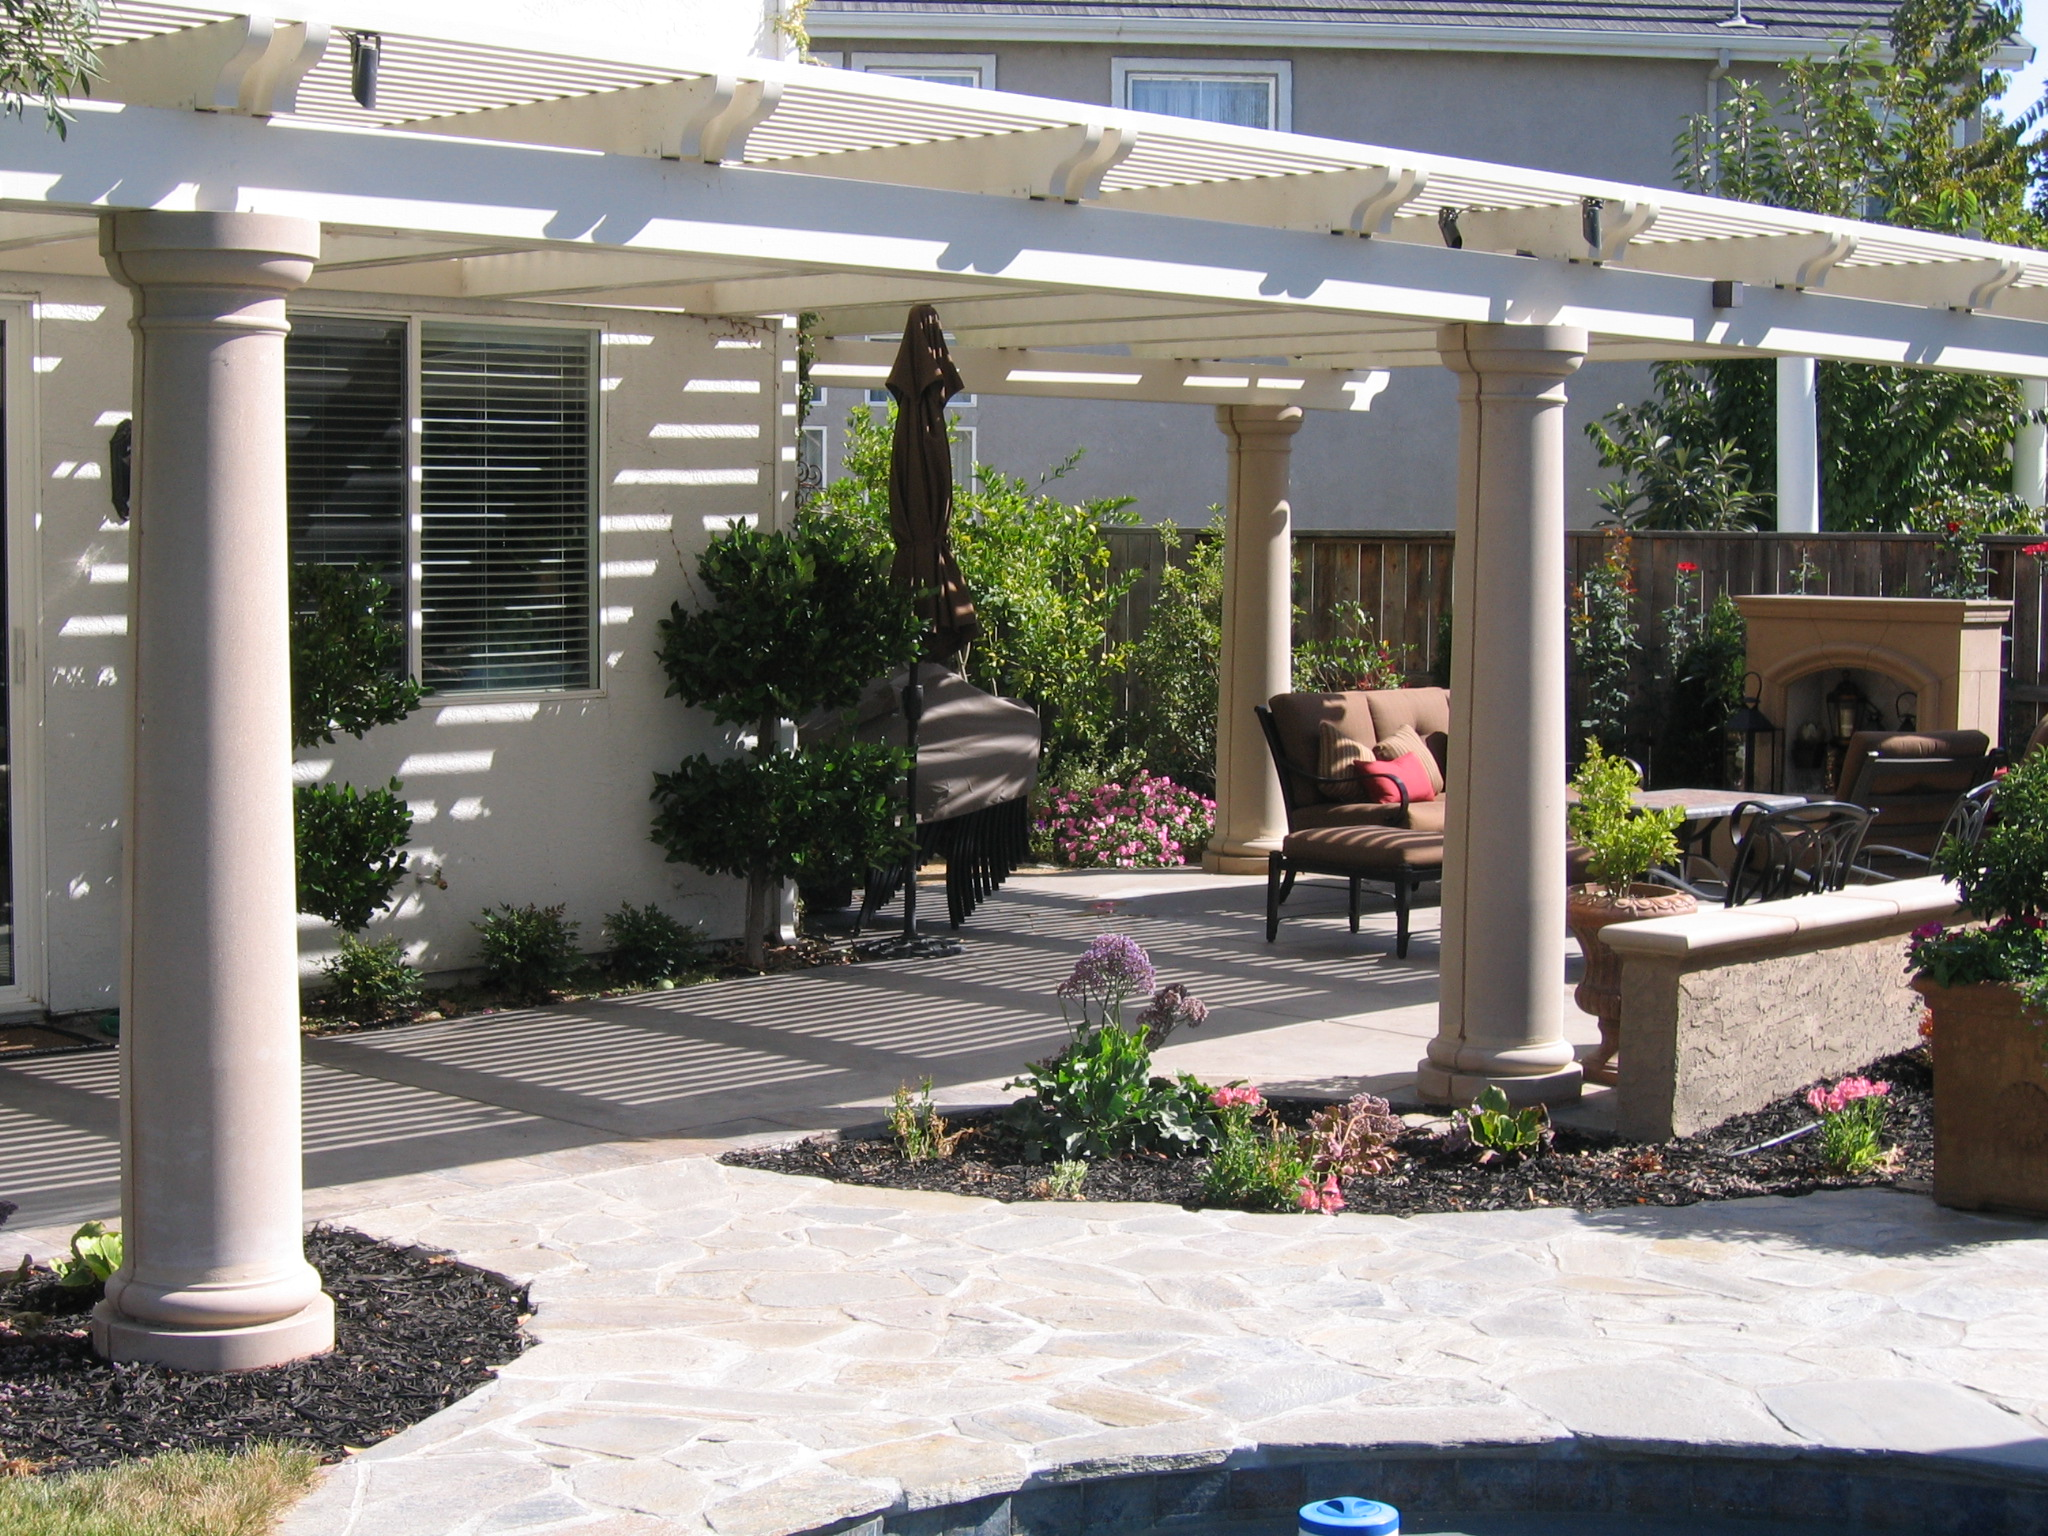 7. Lattice style patio covers